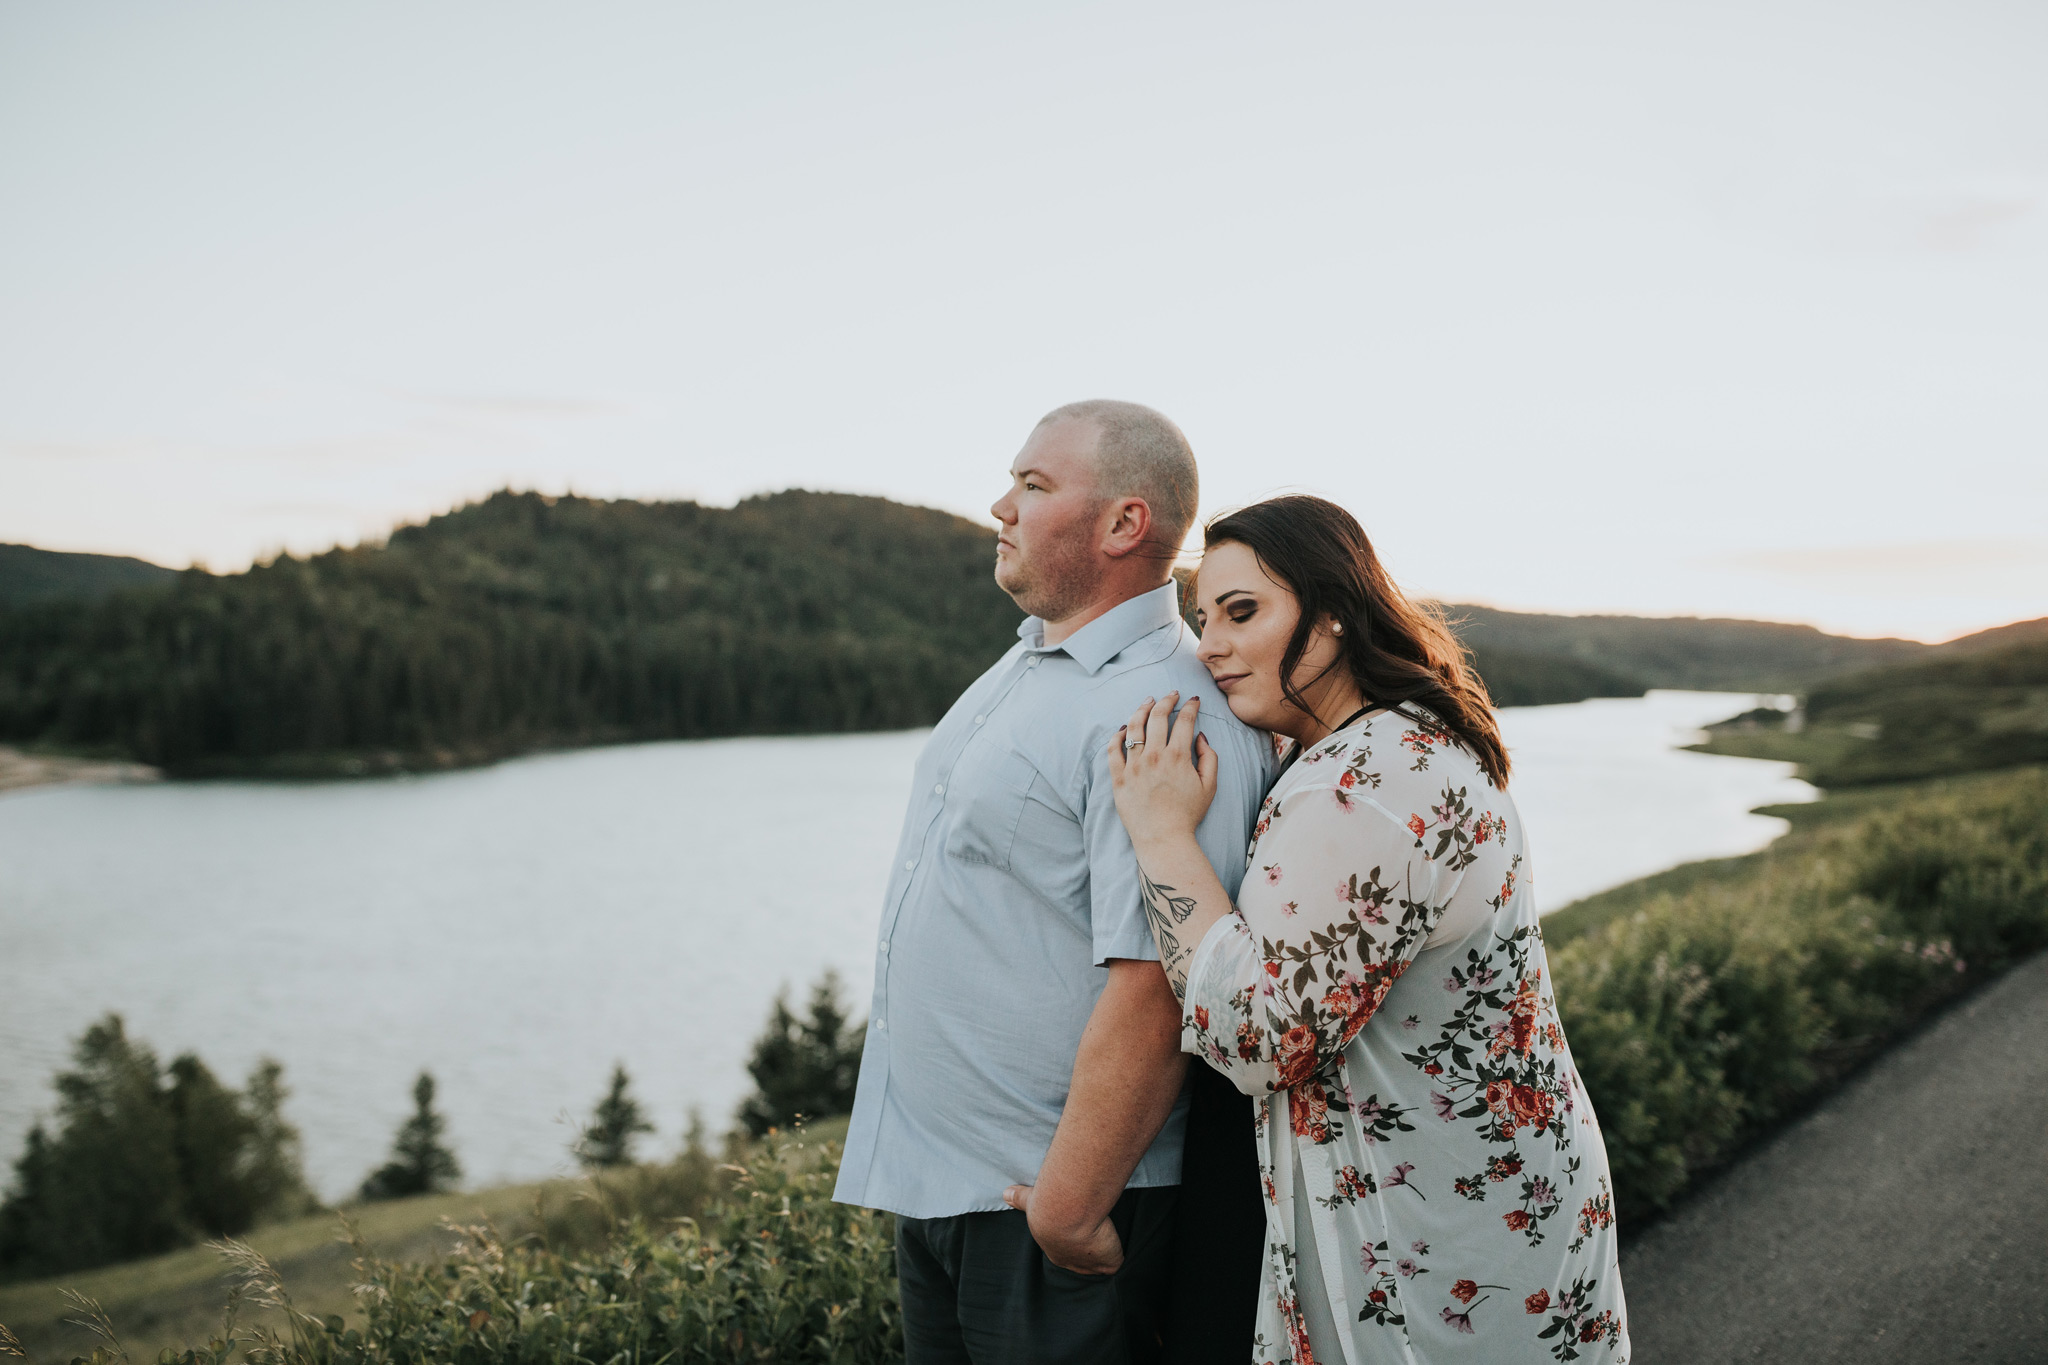 woman embraces fiancé from the back engagement photo view reesor lake alberta